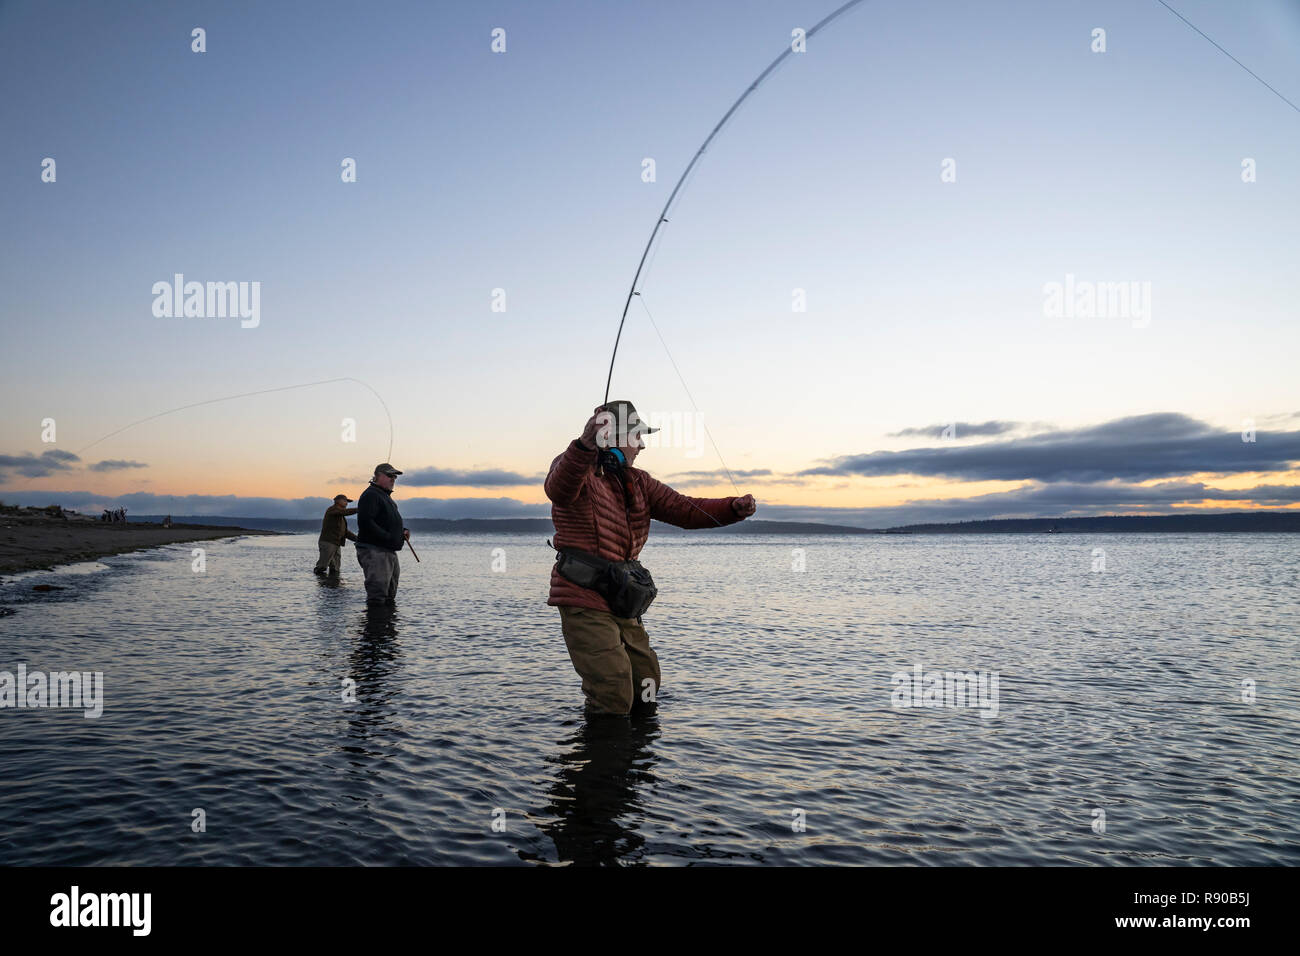 Two fly fishermen cast for searun coastal cutthroat trout and salmon with their guide standing between them on a salt water beach  on a beach on the w Stock Photo